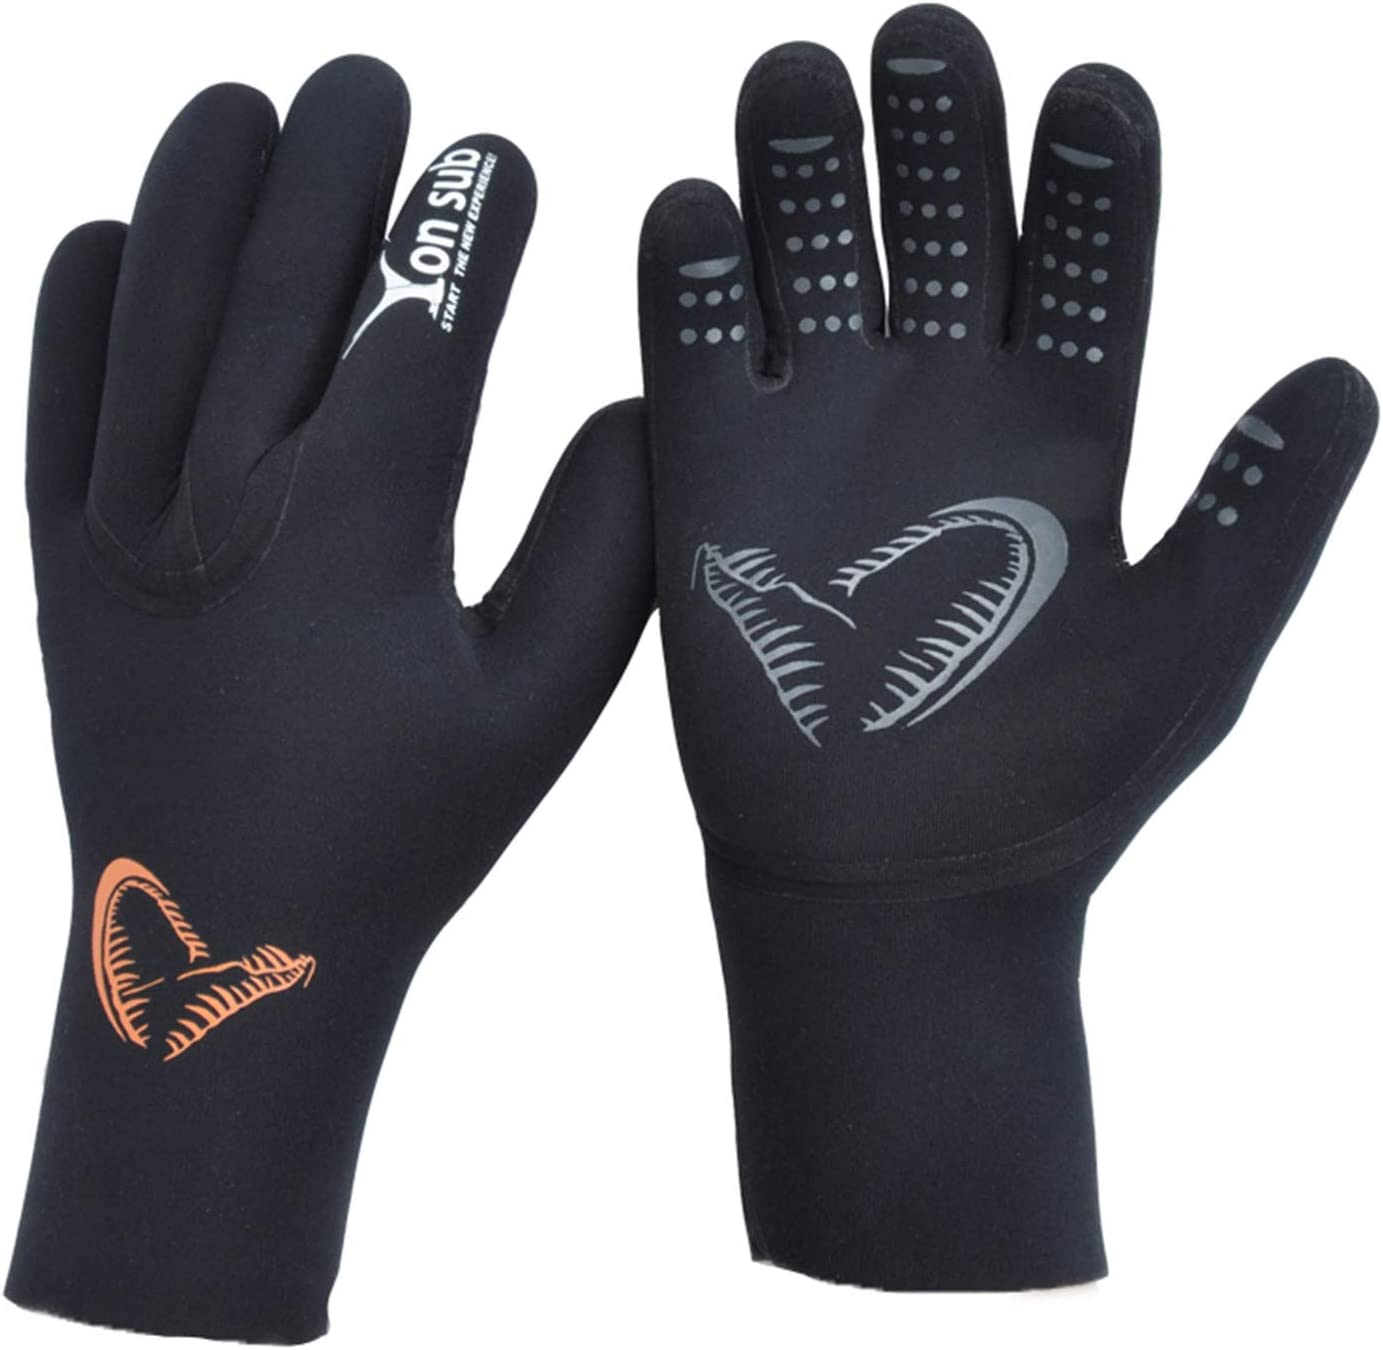 Gorgeous yonsub 3mm Anti-Slip Neoprene Five Gloves Diving Finger Warm for Outlet sale feature